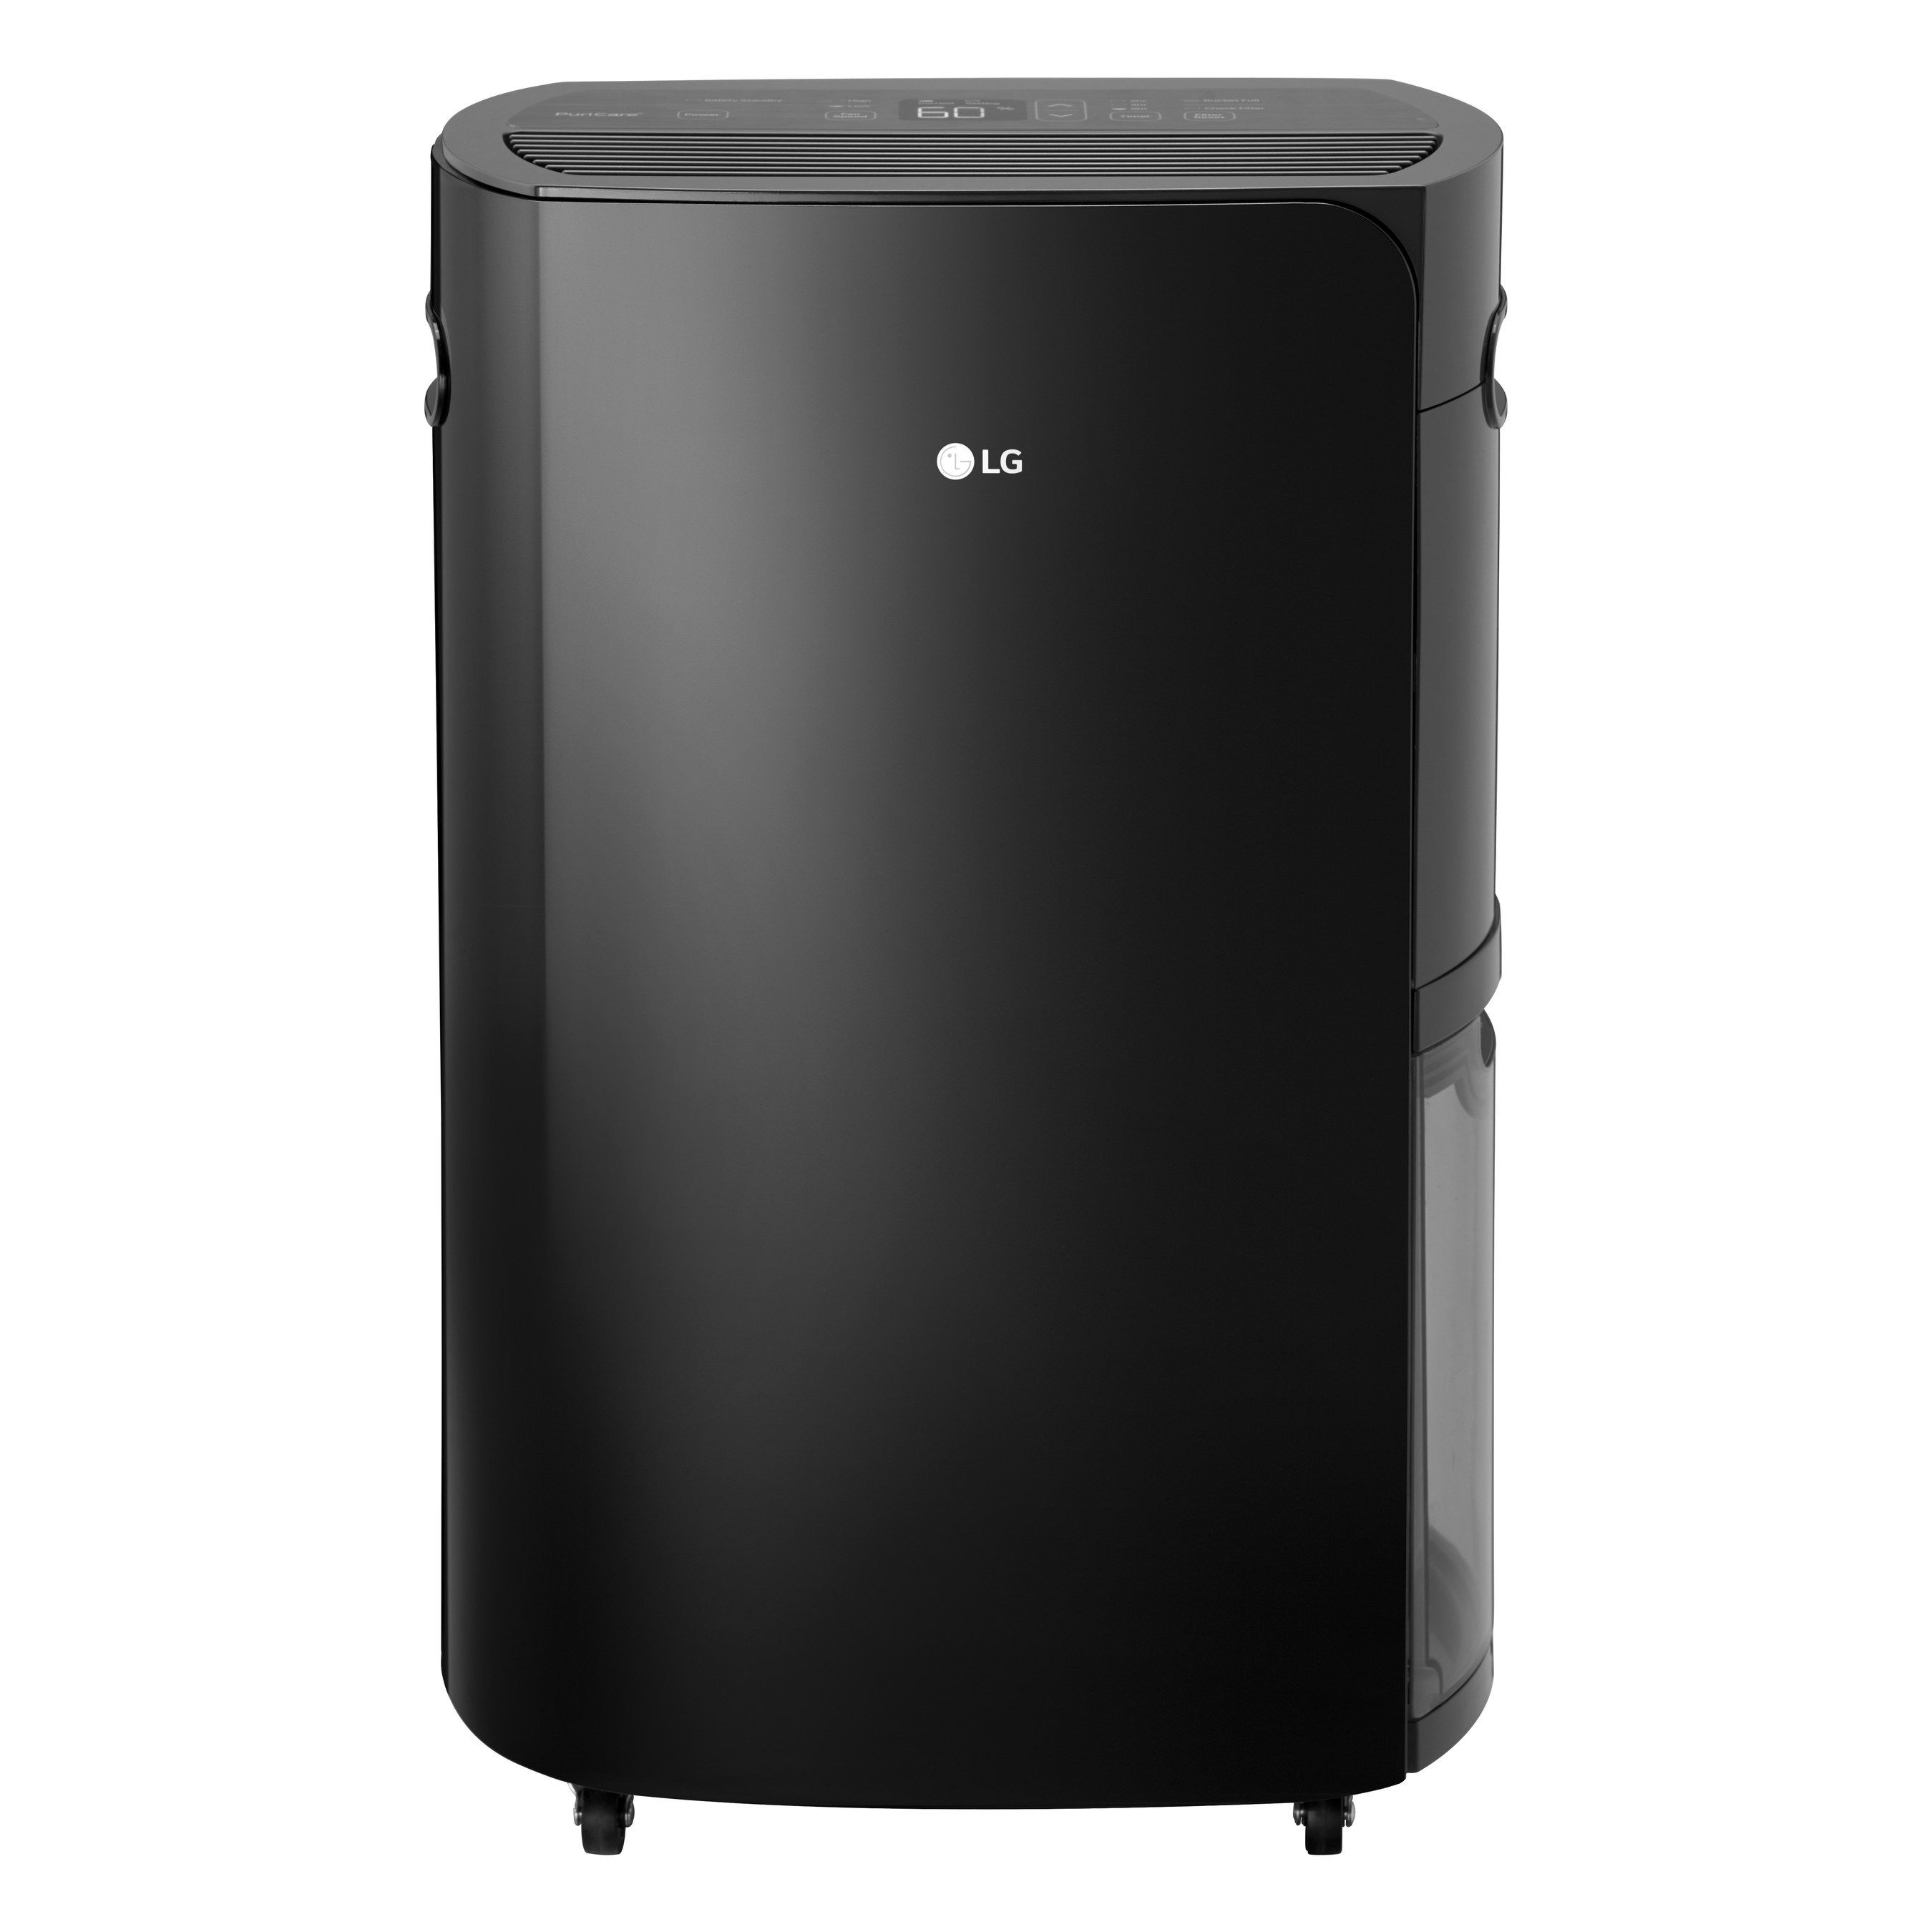 LG Expands Air Care Portfolio With Smart Dehumidifiers And